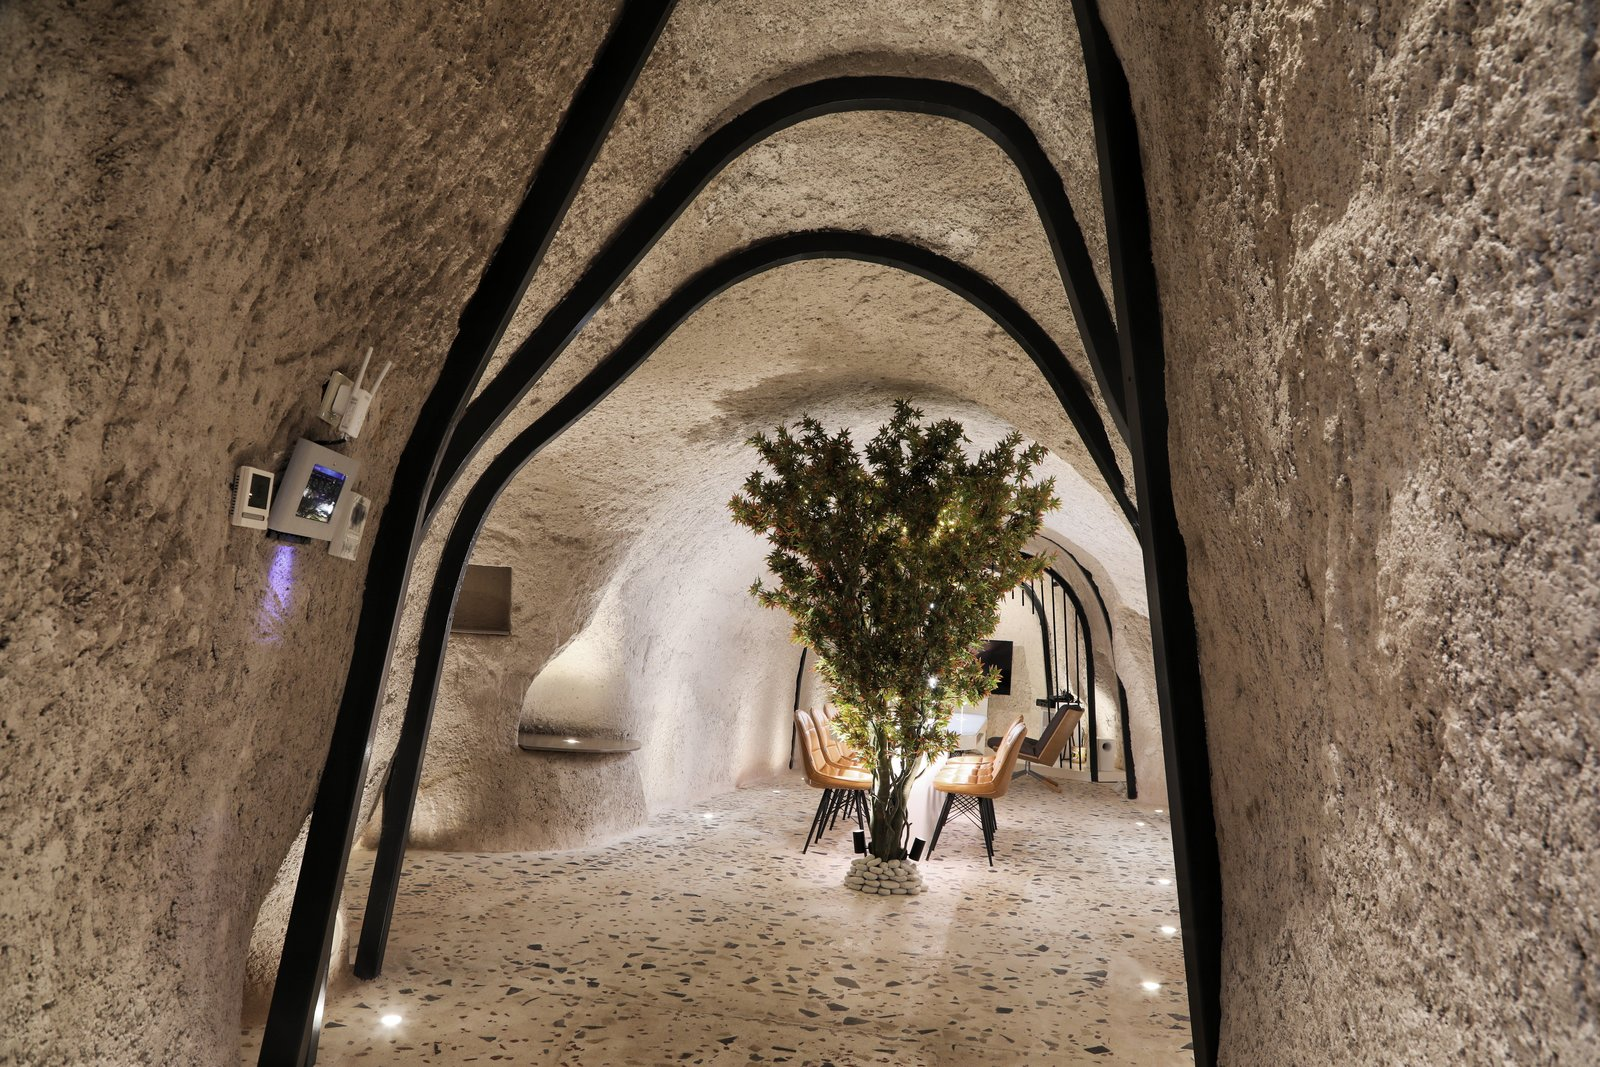 Hallway and Terrazzo Floor  Photo 11 of 13 in A Primal Space Gets a Swanky, Modern Twist in This Turkish Cave Loft